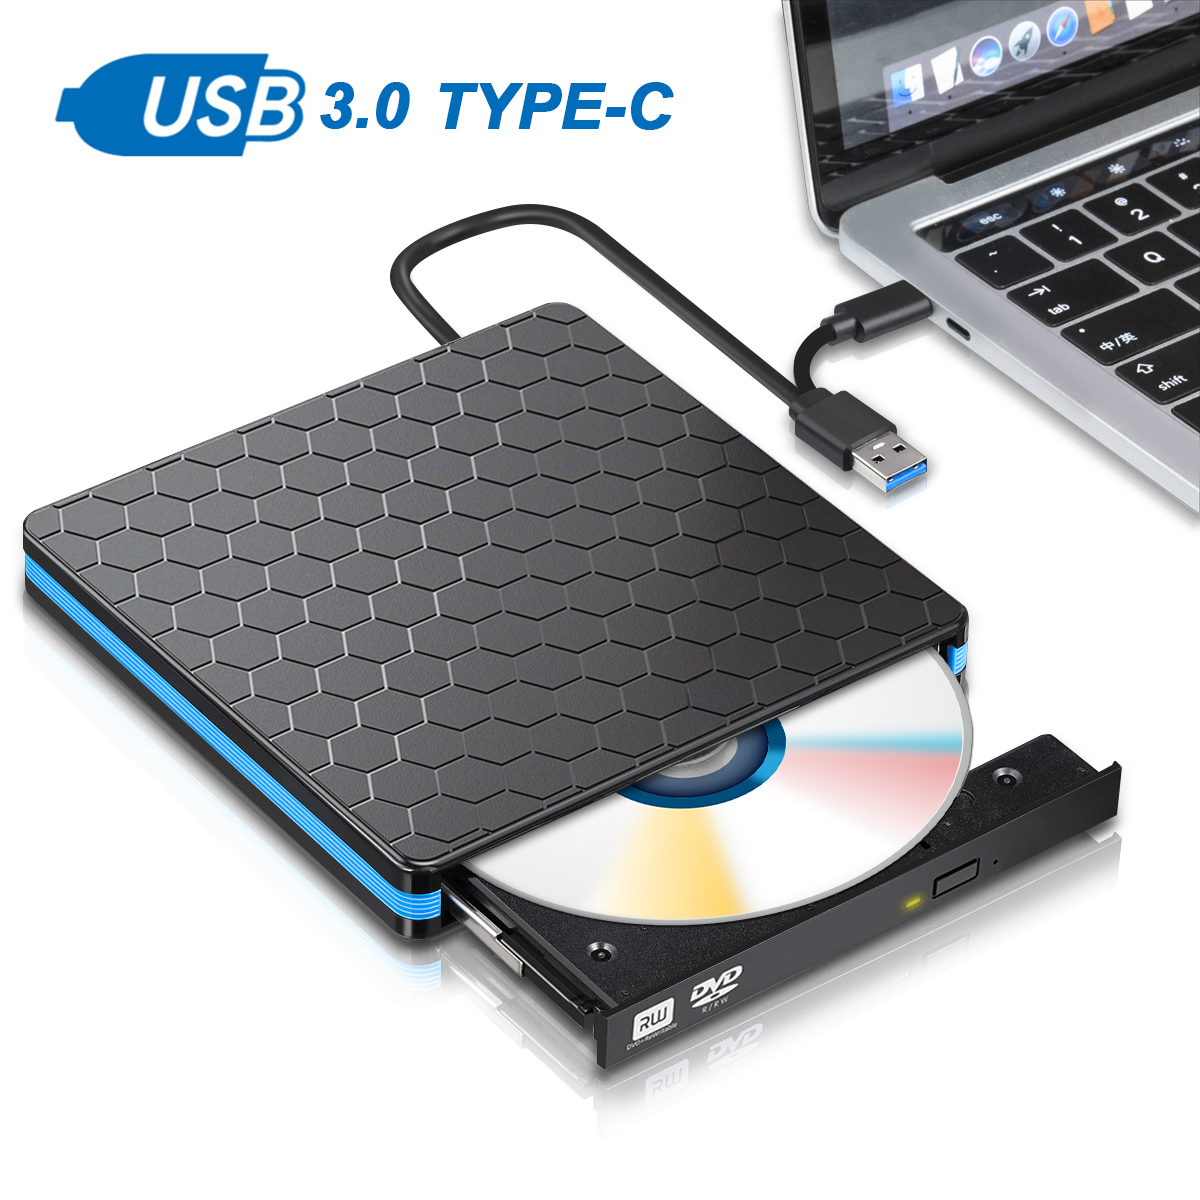 External DVD Drive Optical Drive USB 3.0 CD ROM Player CD-RW Burner Writer Reader Recorder Portatil for Laptop Windows PC